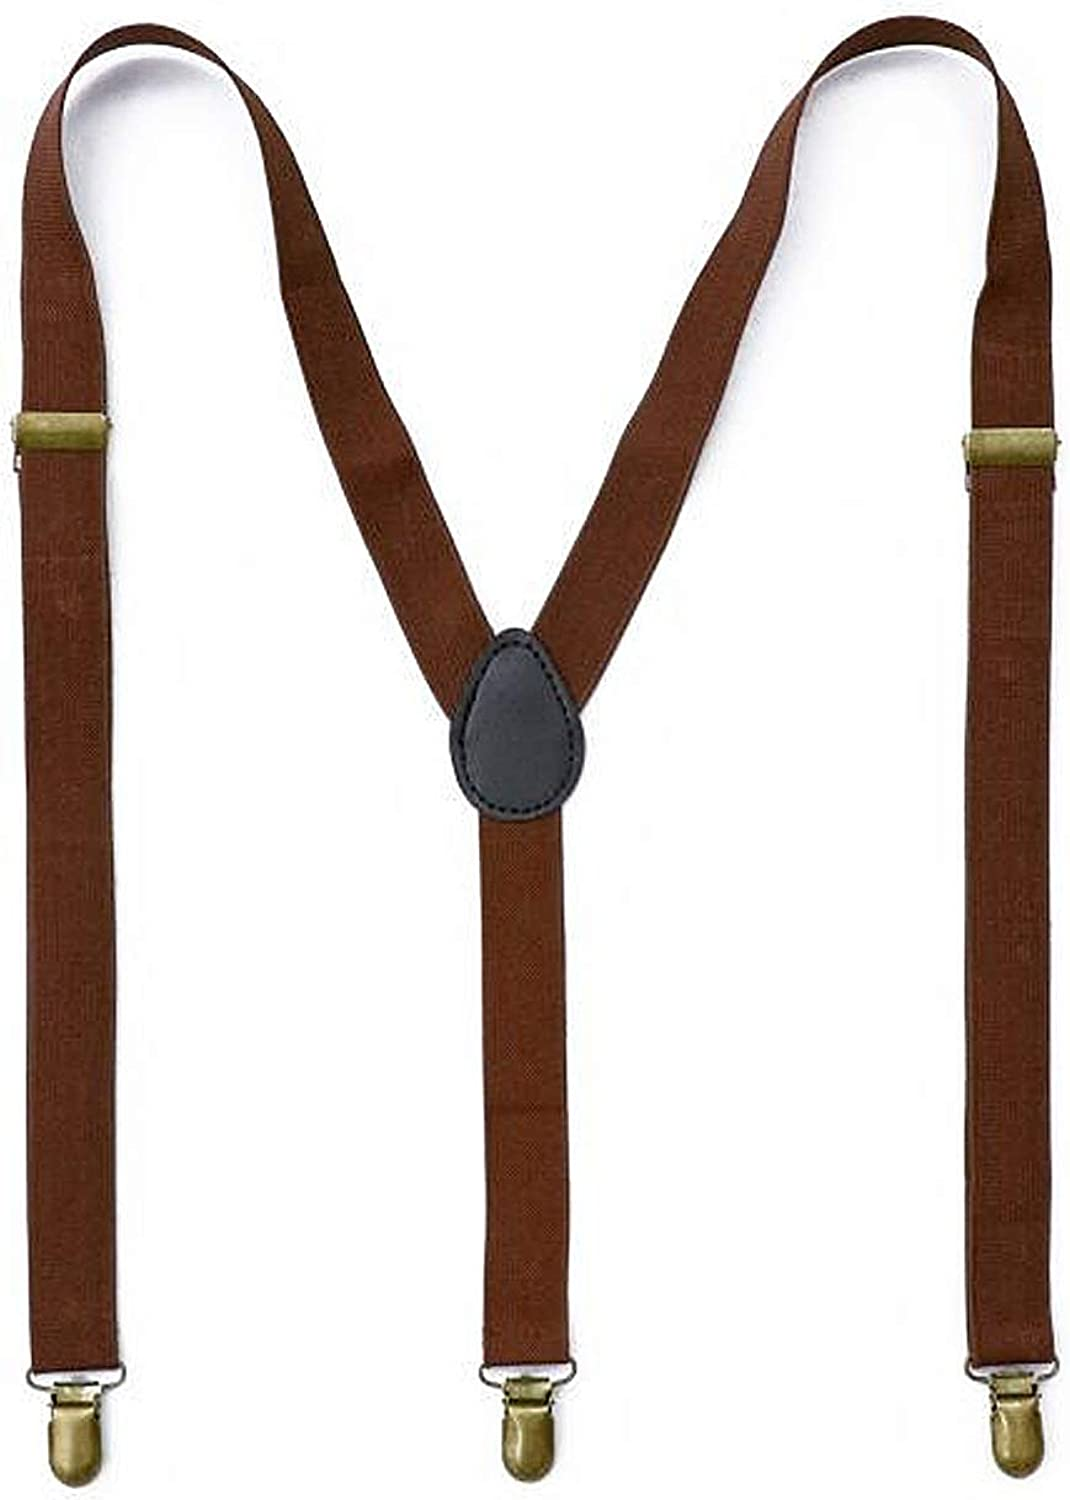 Suspenders for Men, Best Gift for Dad/man/boy, Accessories for Shirt Stays